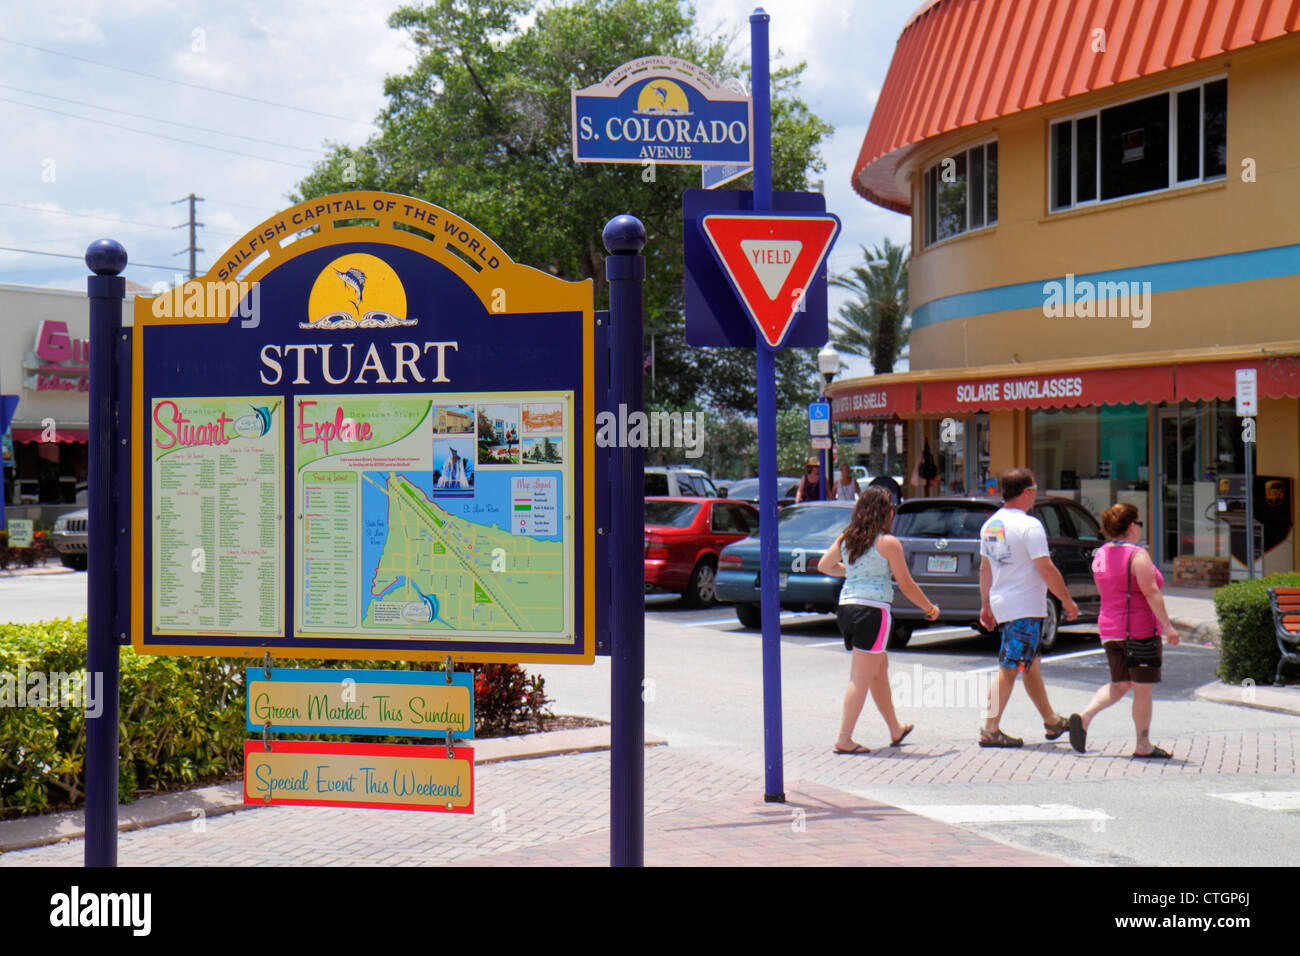 Stuart Florida South Colorado Avenue downtown sign directory shopping yield sign - Stock Image